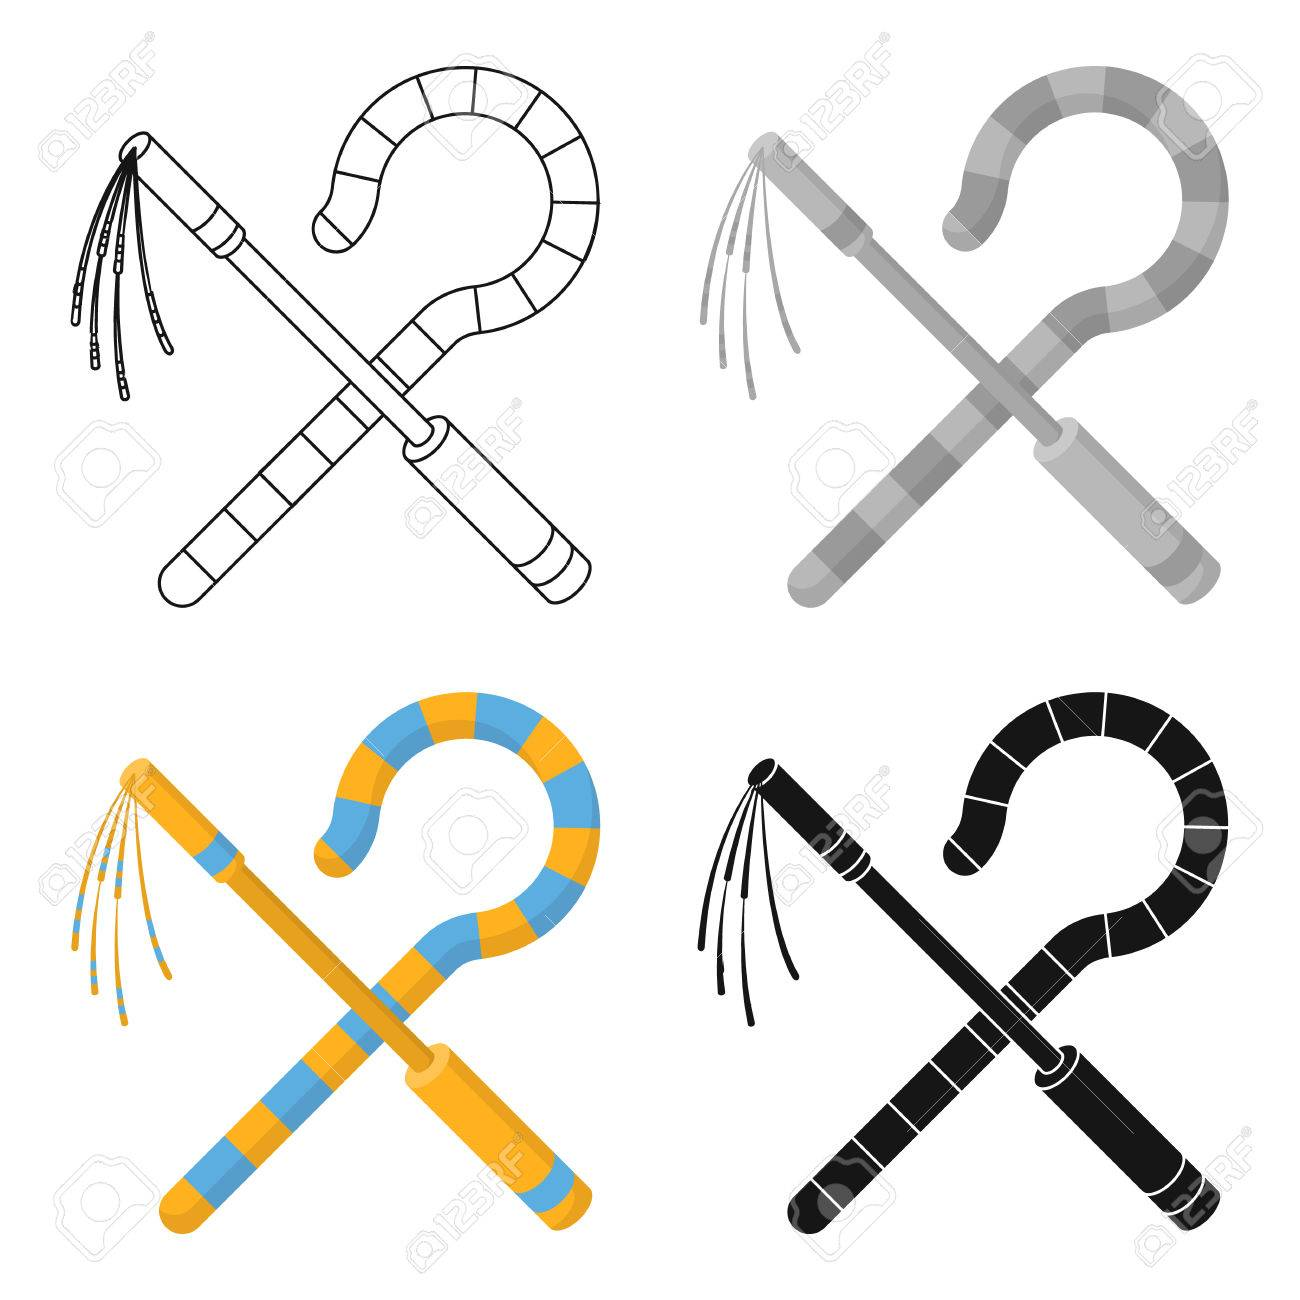 Crook And Flail Icon In Cartoon Style Isolated On White Background